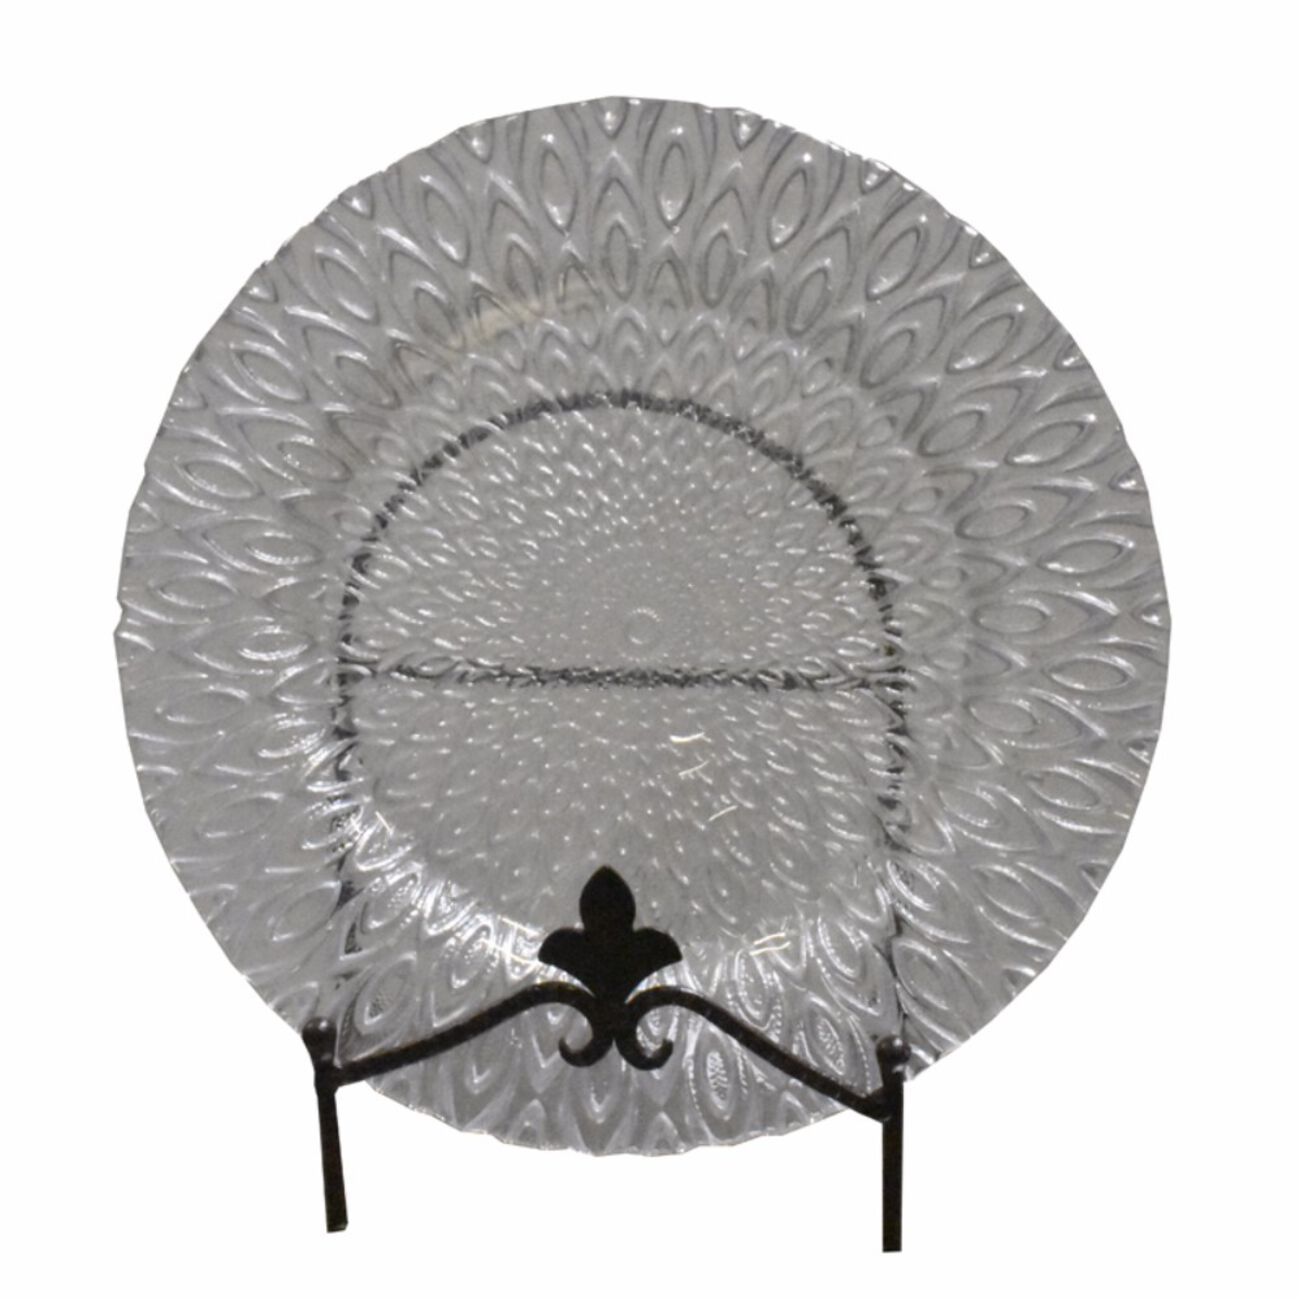 Appealing Glass Charger Plate With Engraved Pattern, Clear